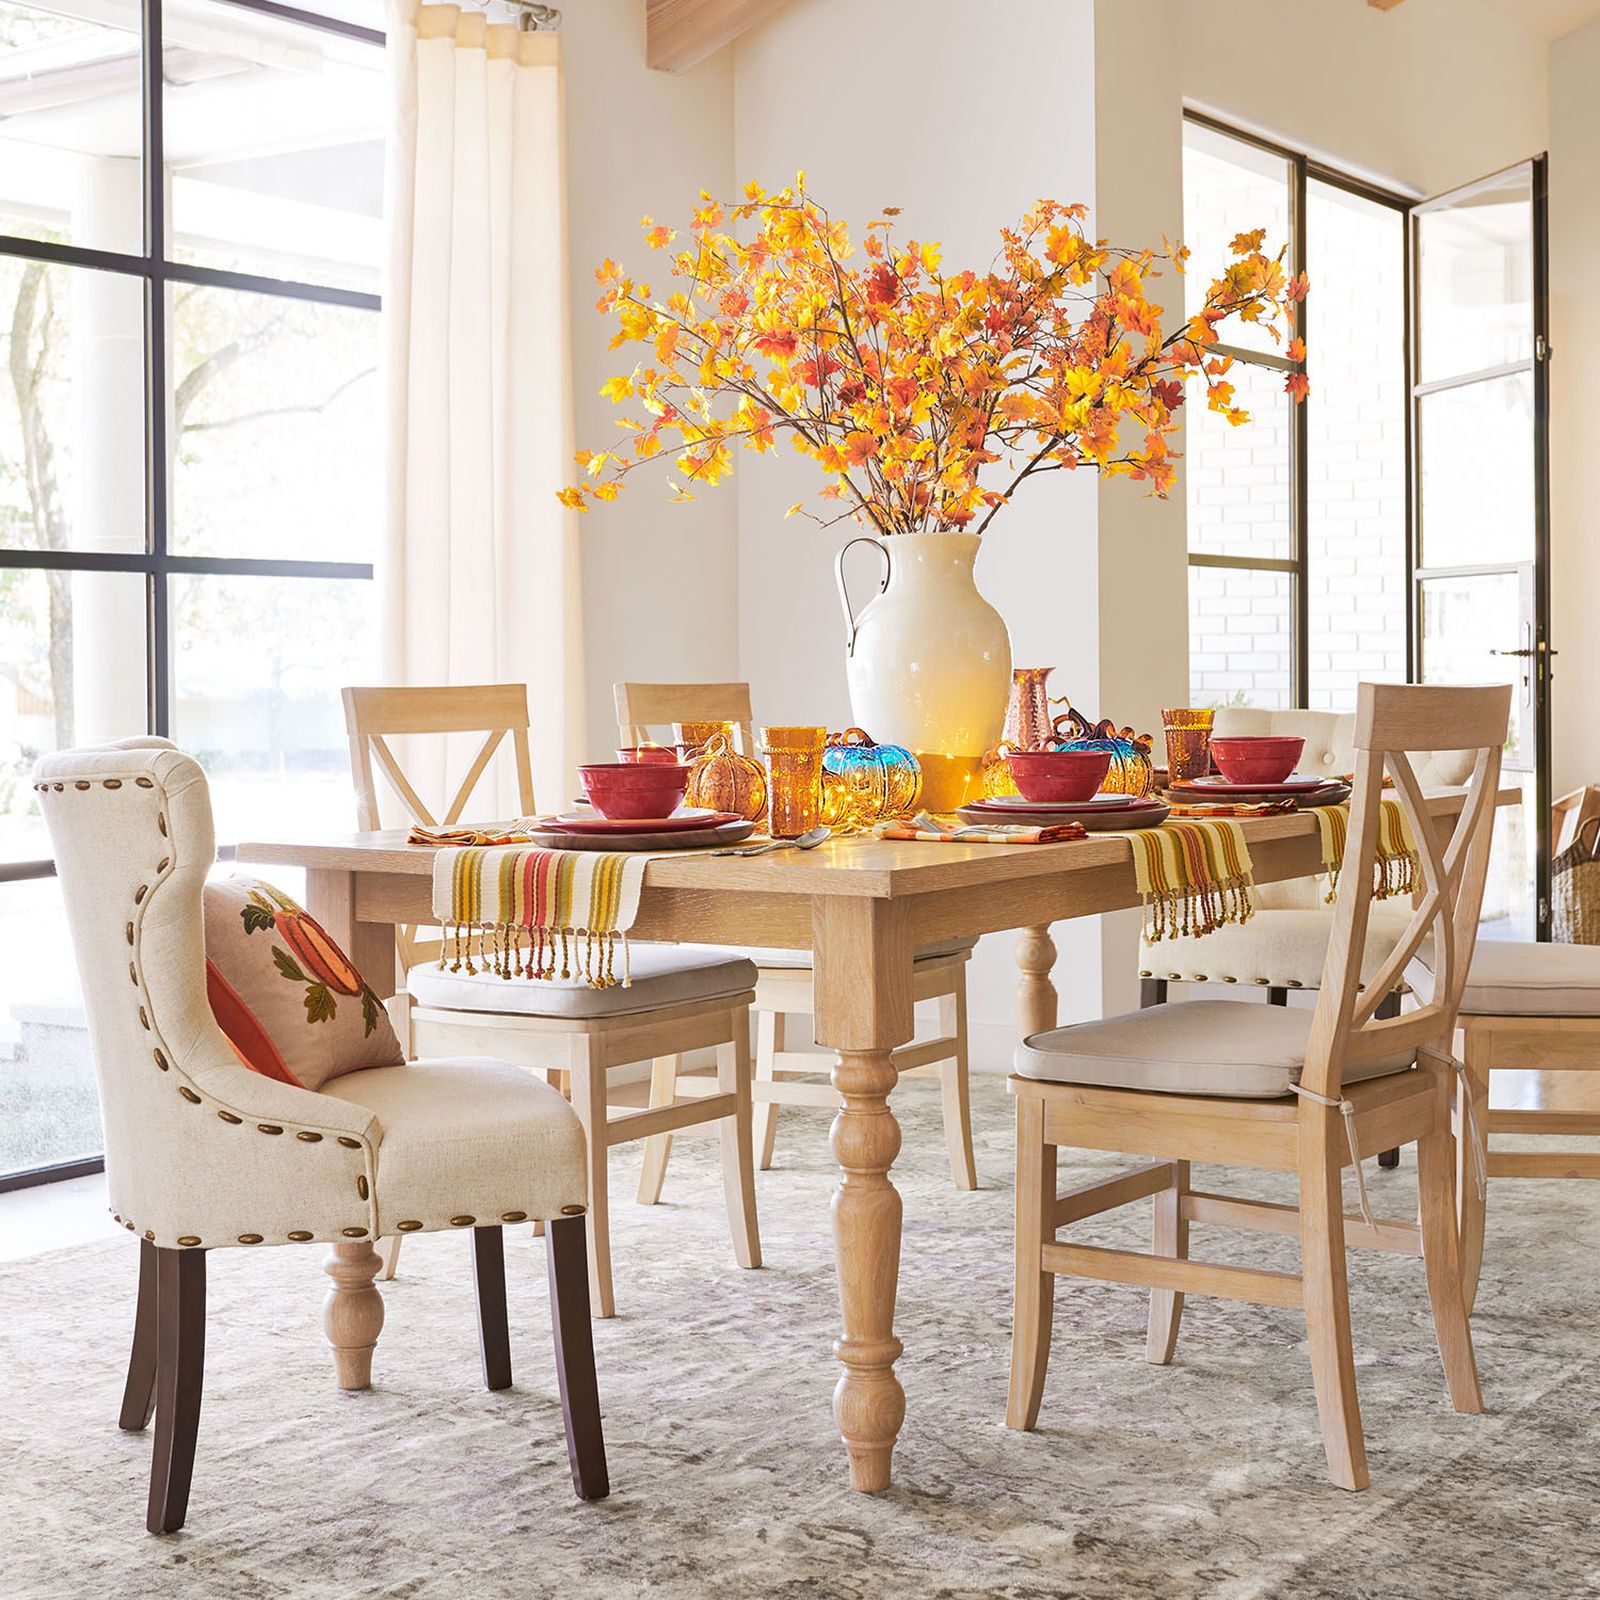 Build Your Own Torrance Whitewash Hourglass Chair Dining